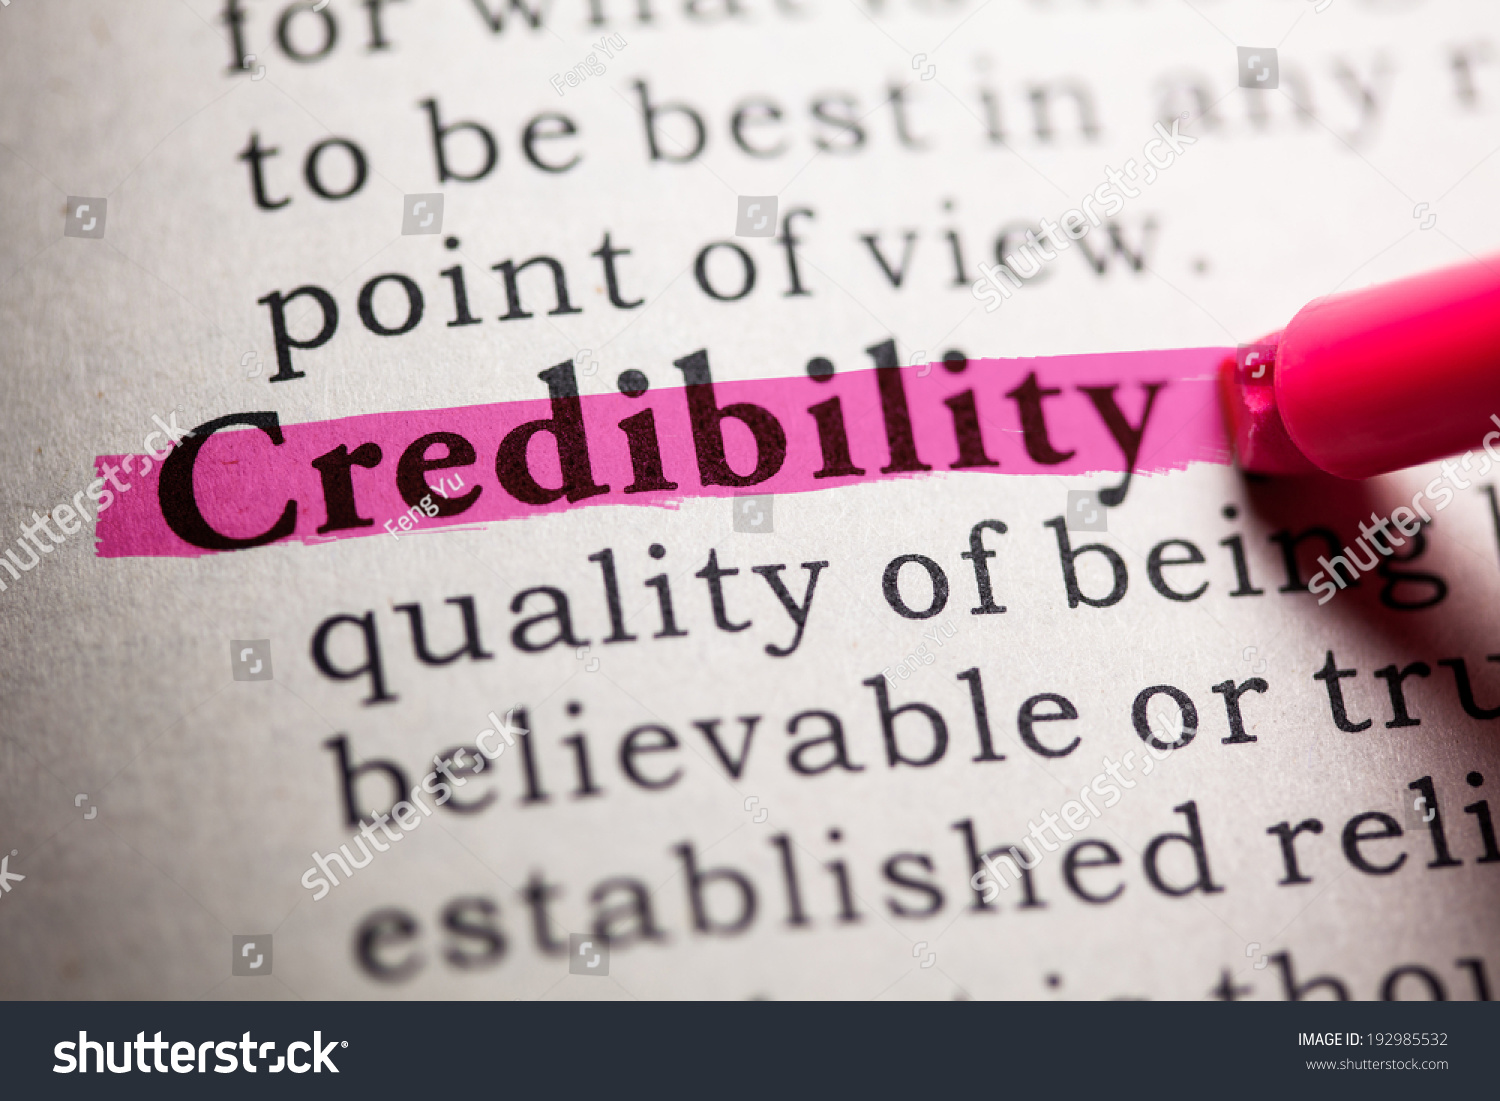 Image result for image for the word credibility